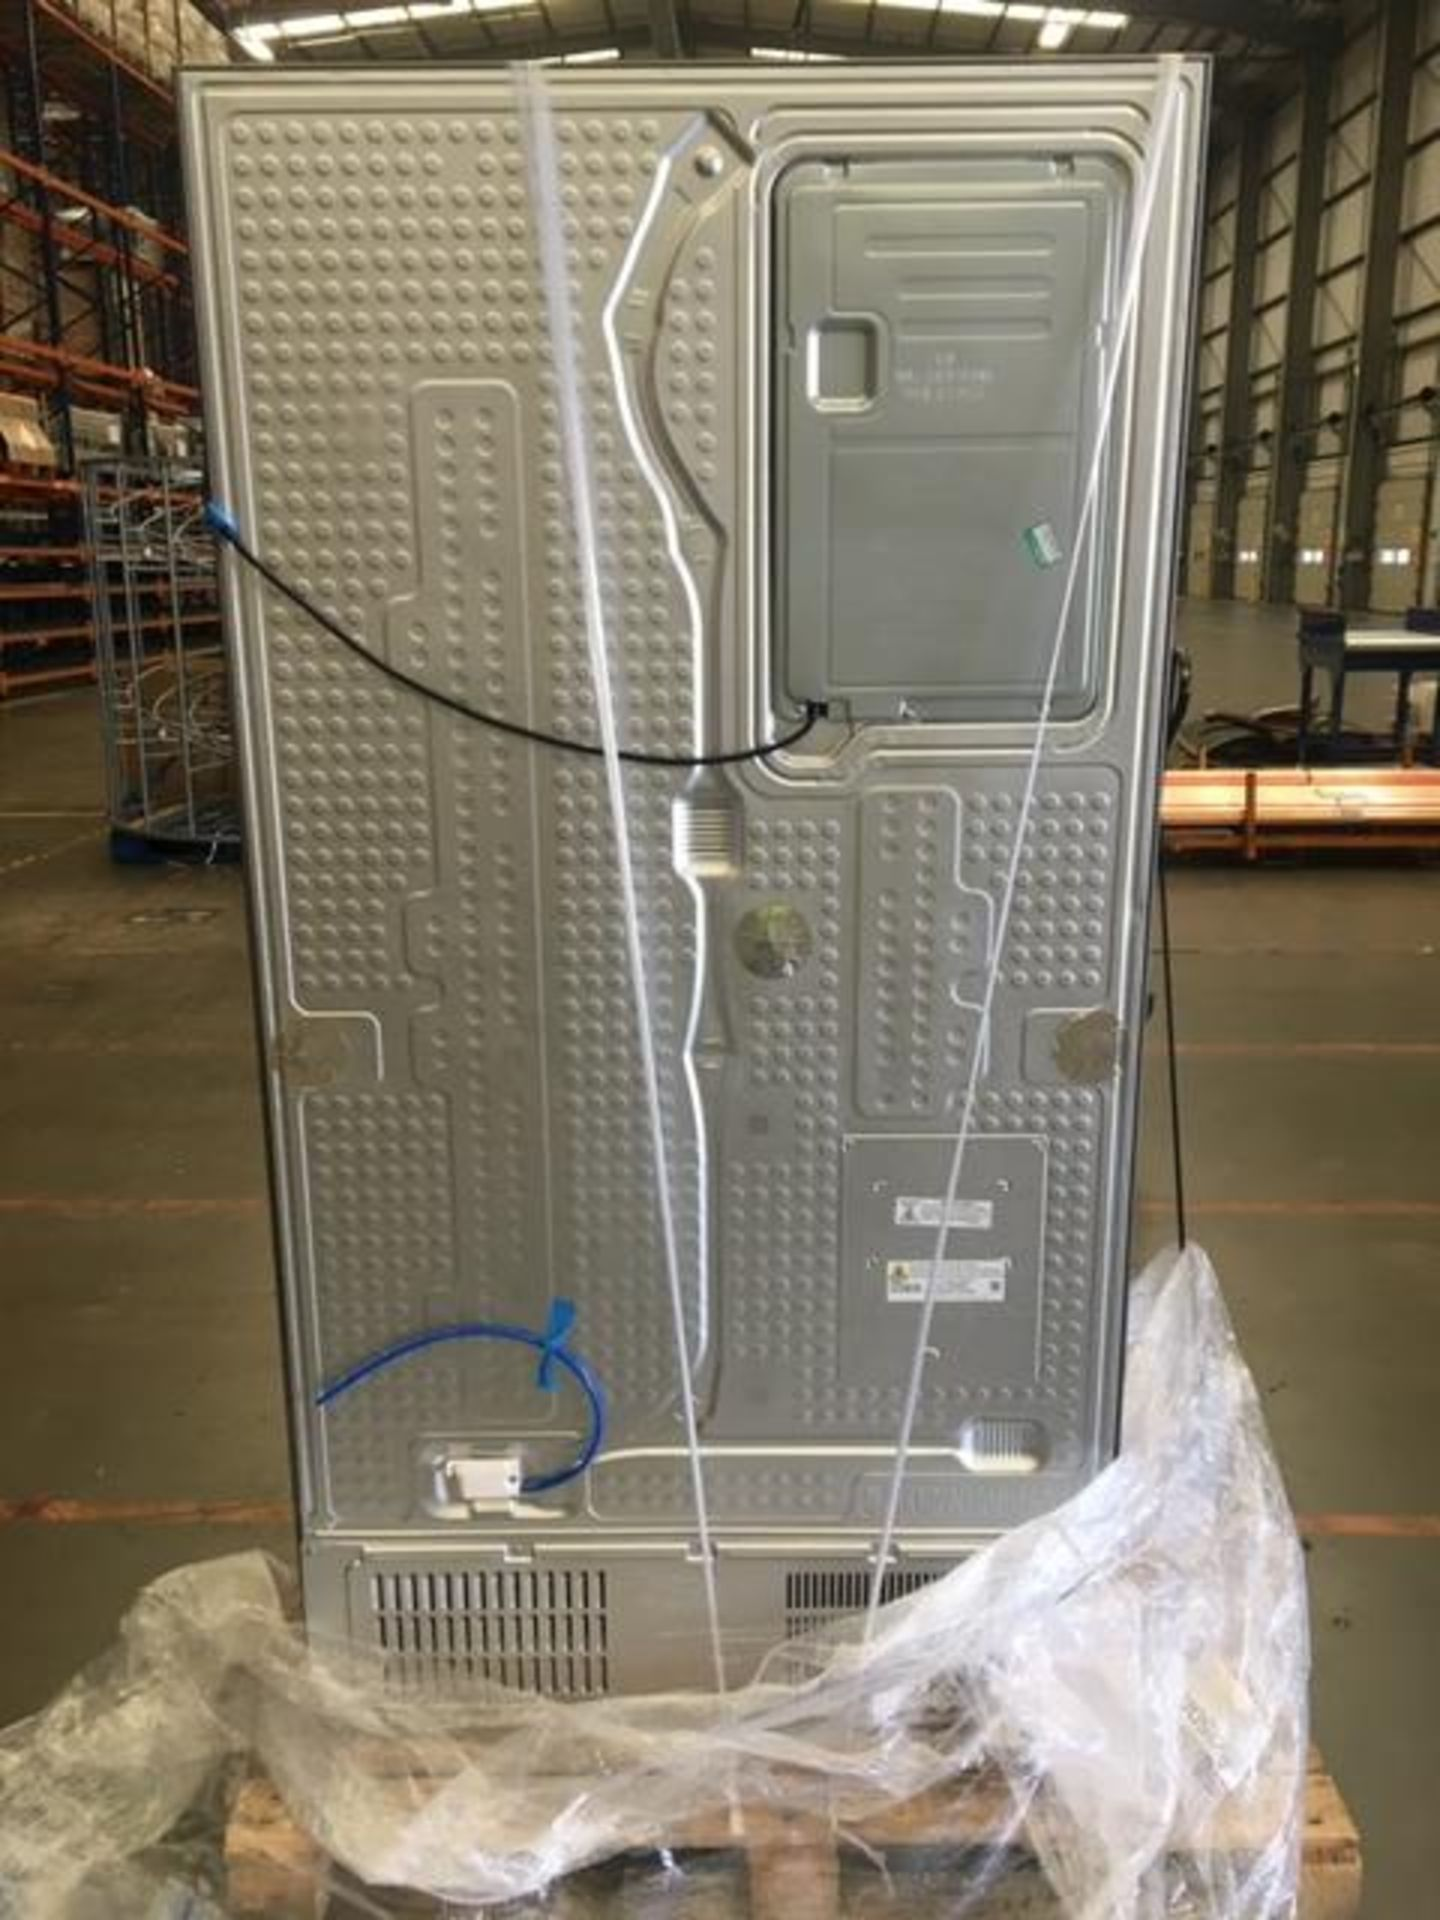 Pallet of 1 Samsung Water & Ice Fridge freezer. Latest selling price £1,769.99* - Image 9 of 10